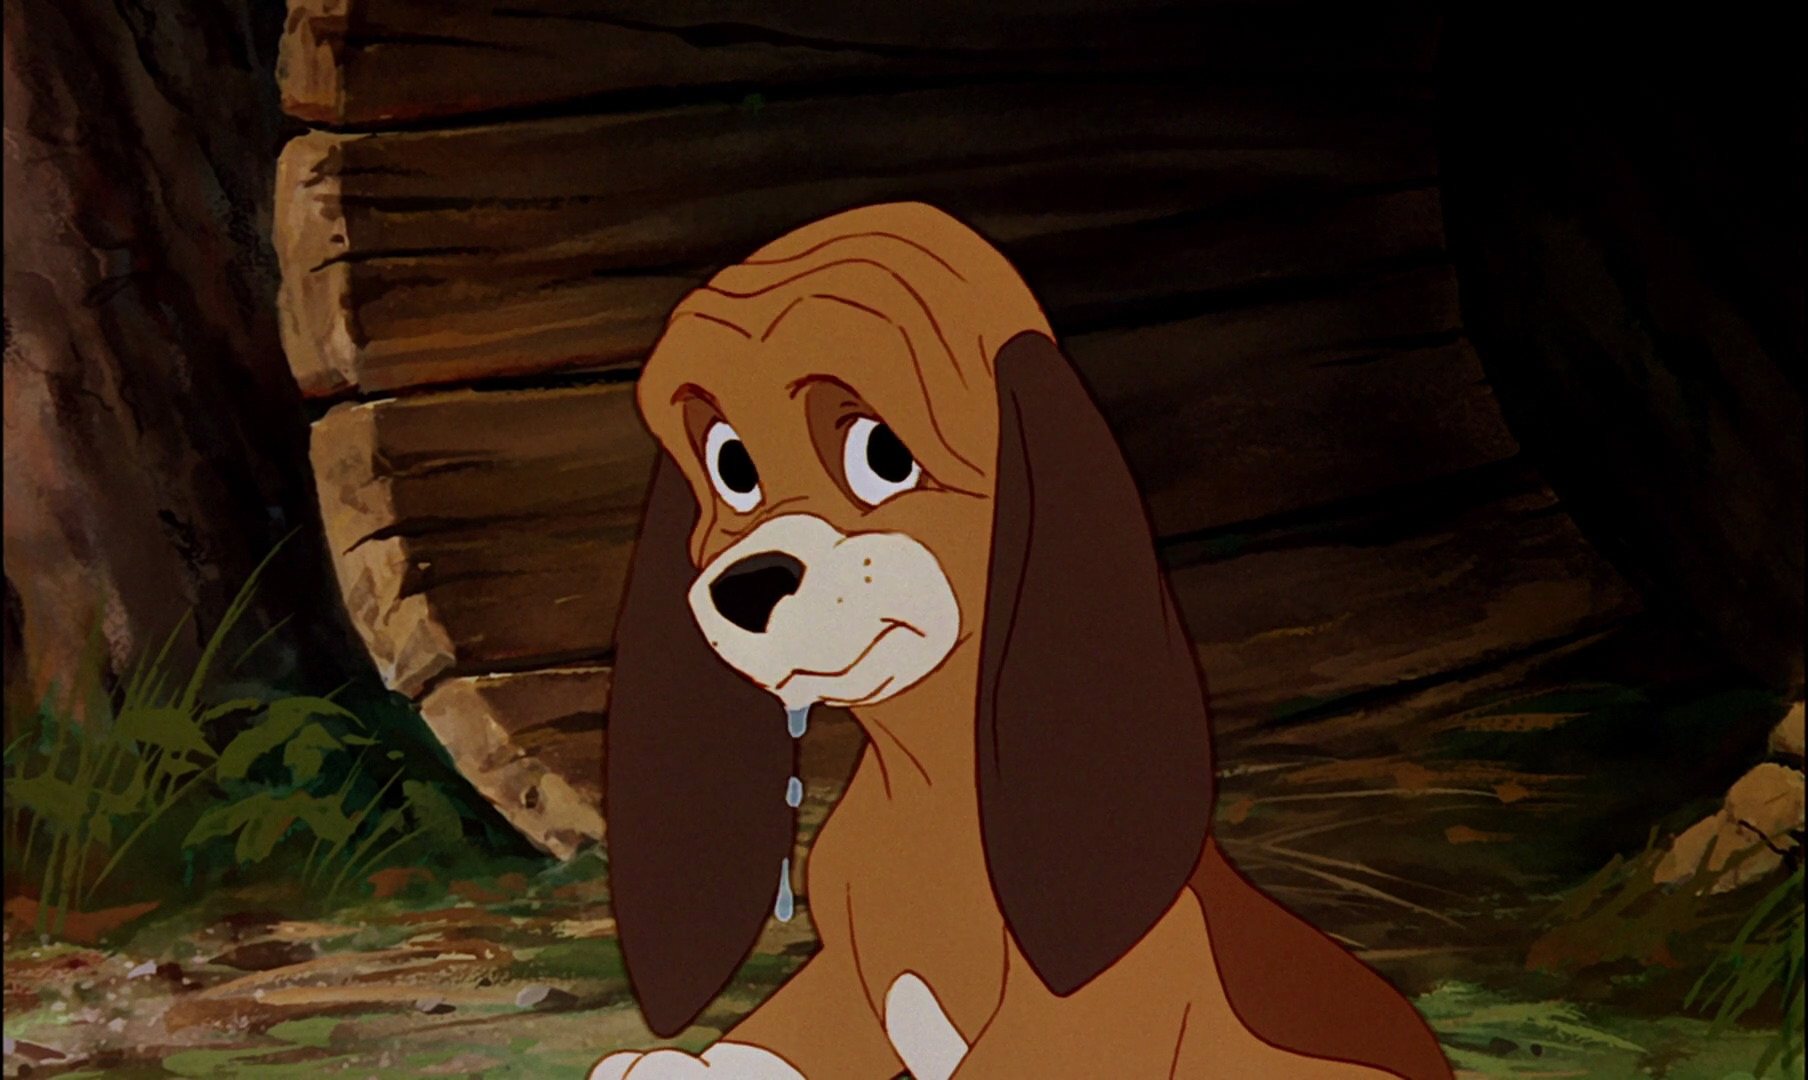 copper personnage rox rouky fox hound disney character